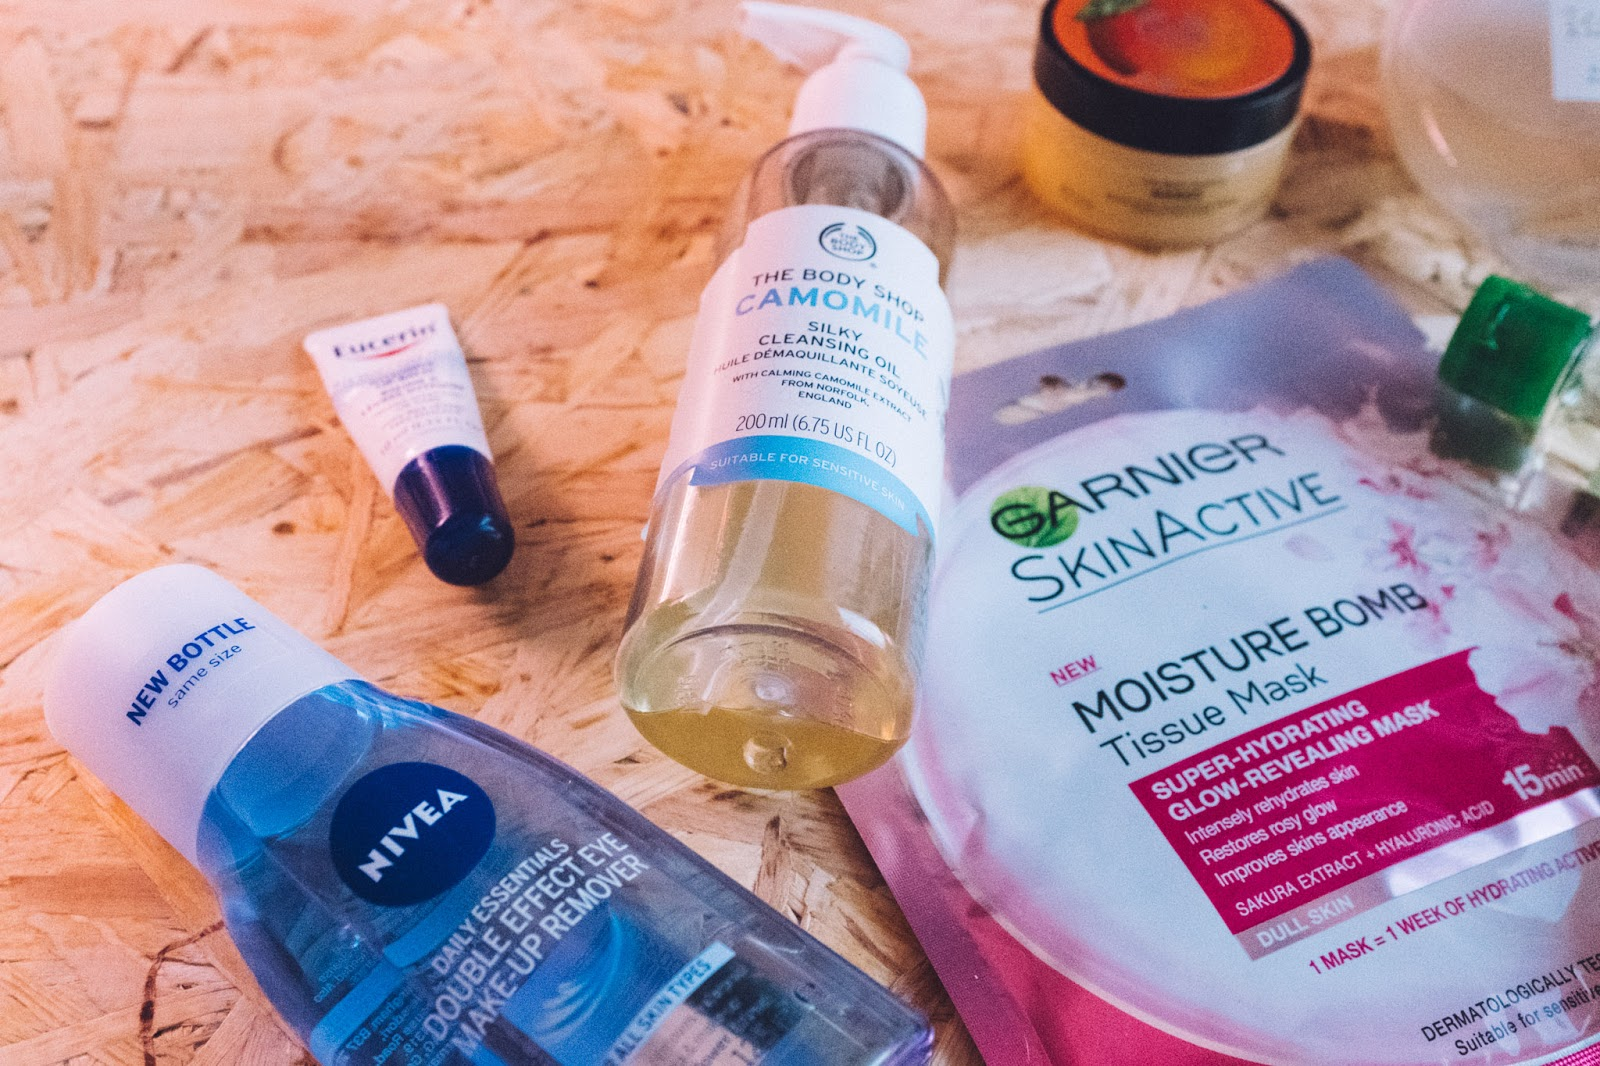 Bargain beauty buys blogger